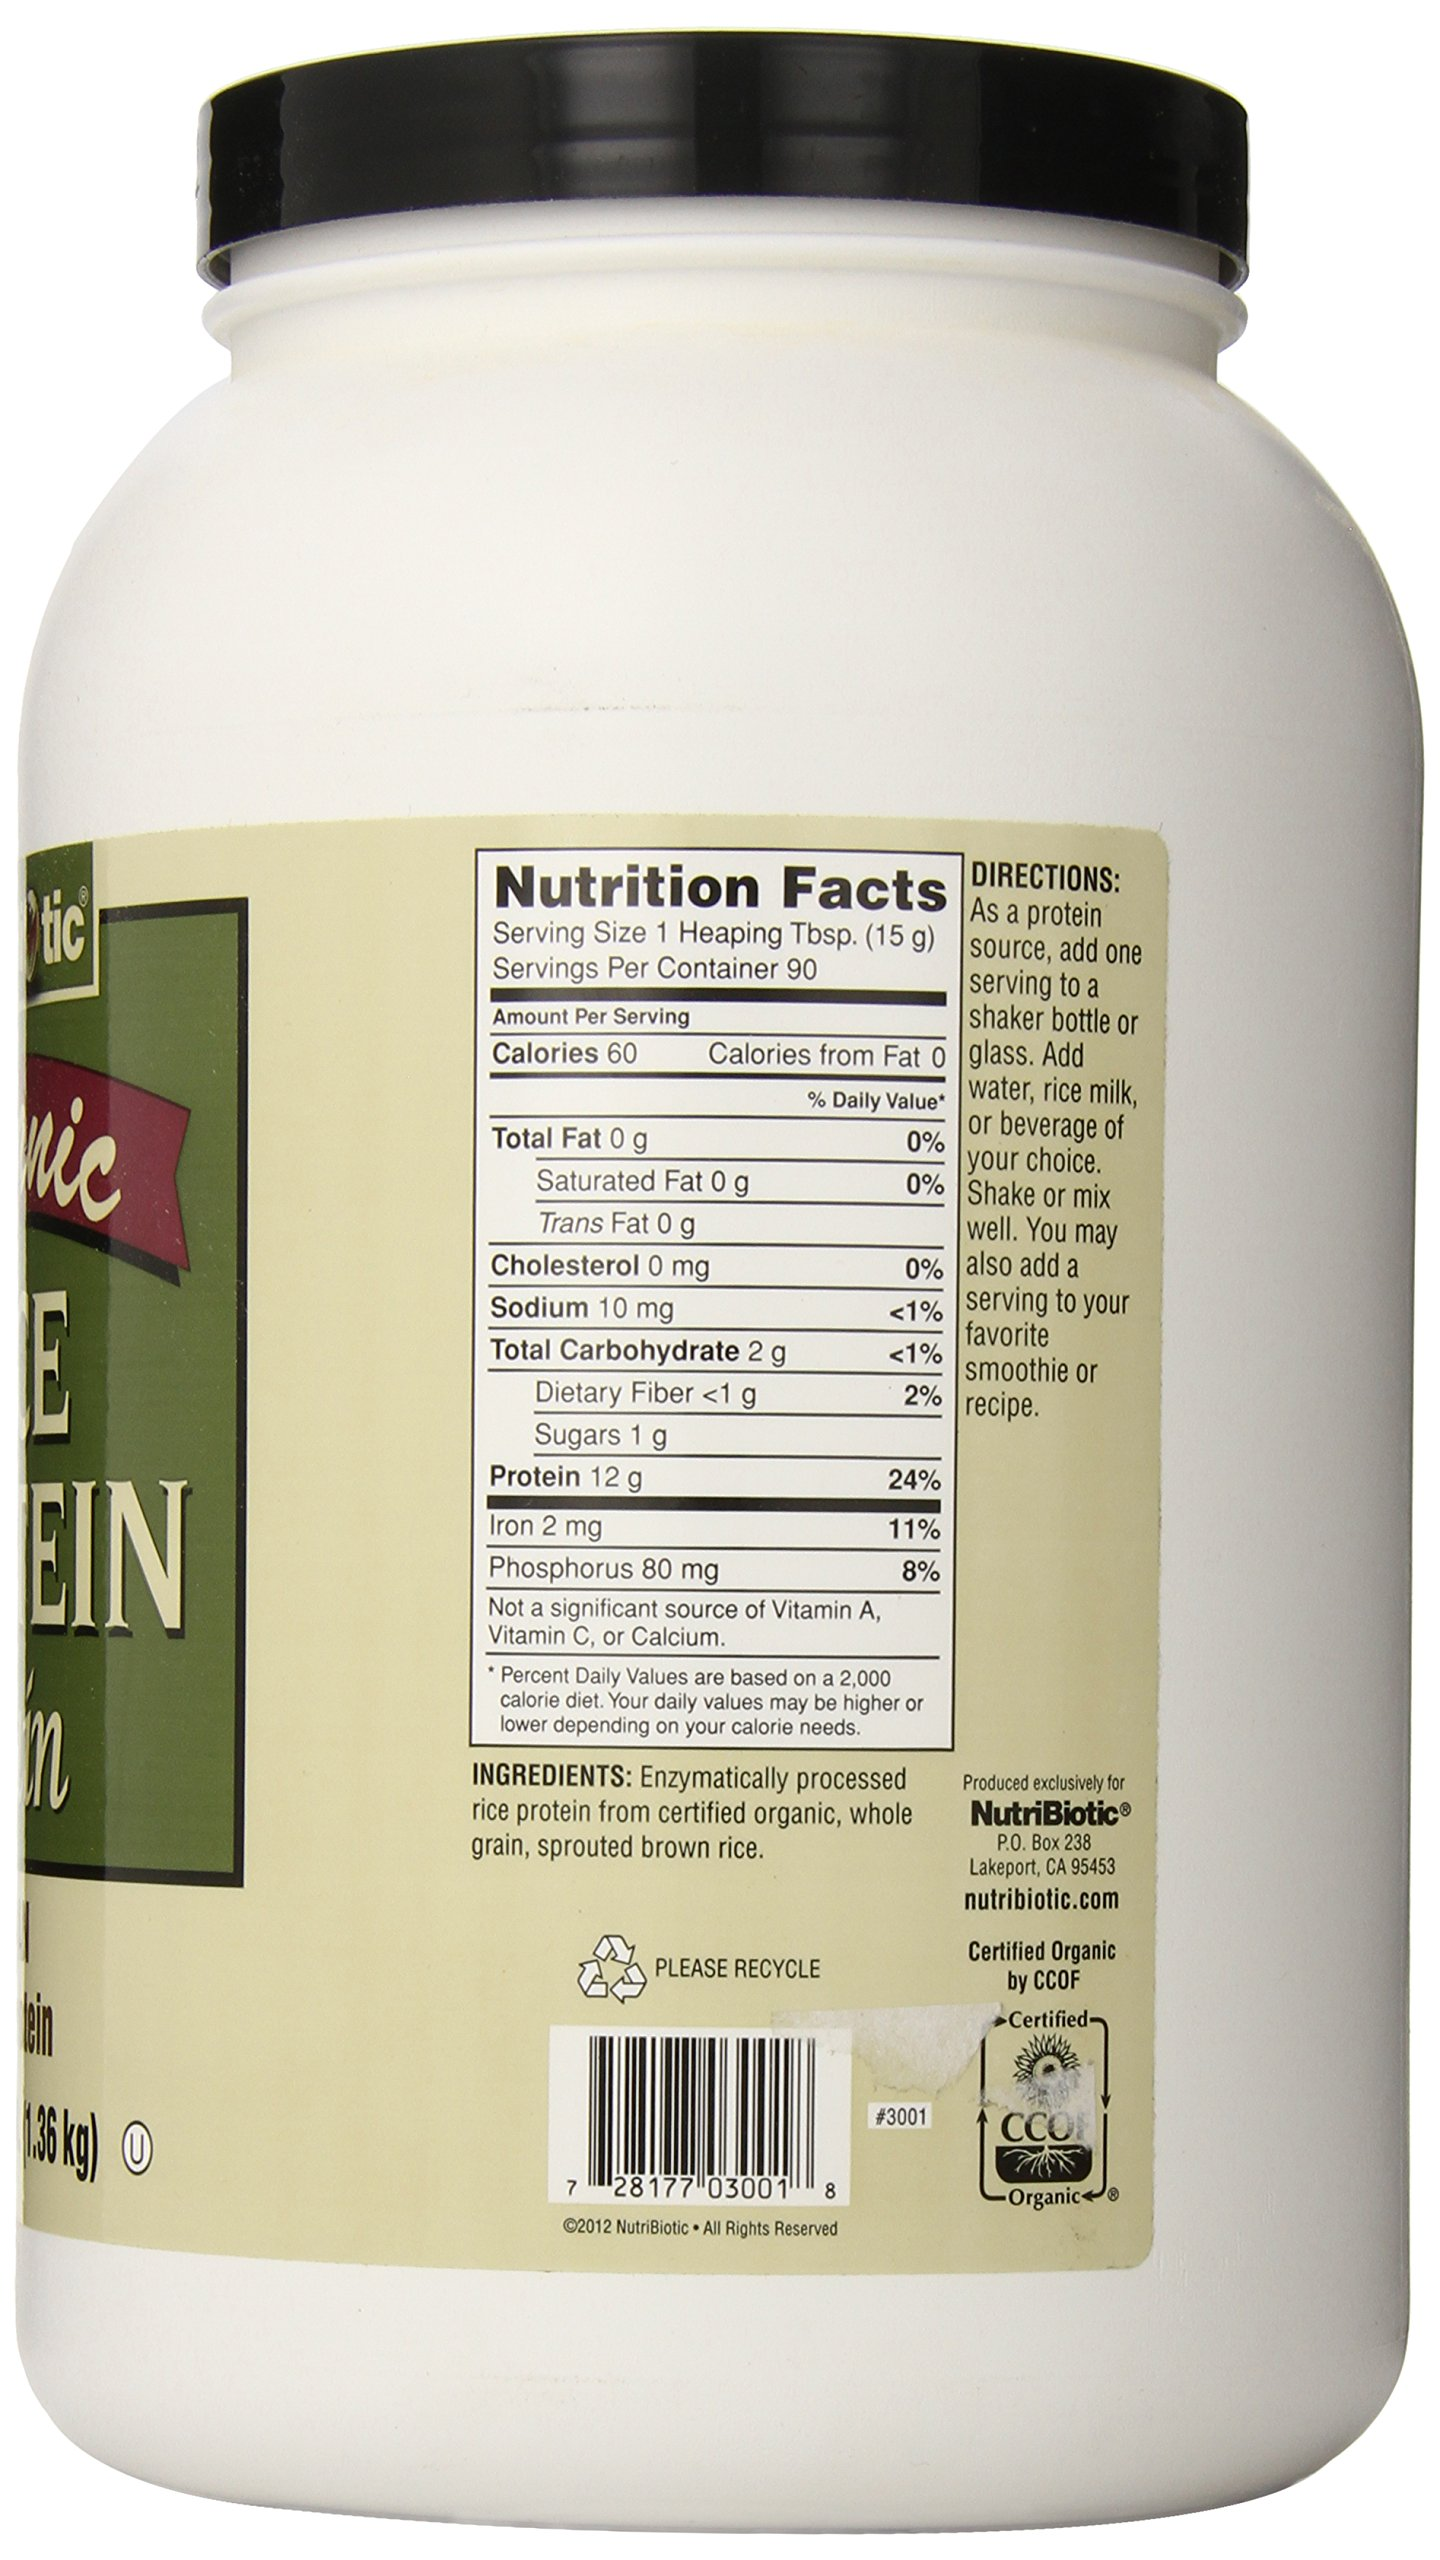 Nutribiotic Organic Rice Protein, Plain, 3 Pound by Nutribiotic (Image #4)